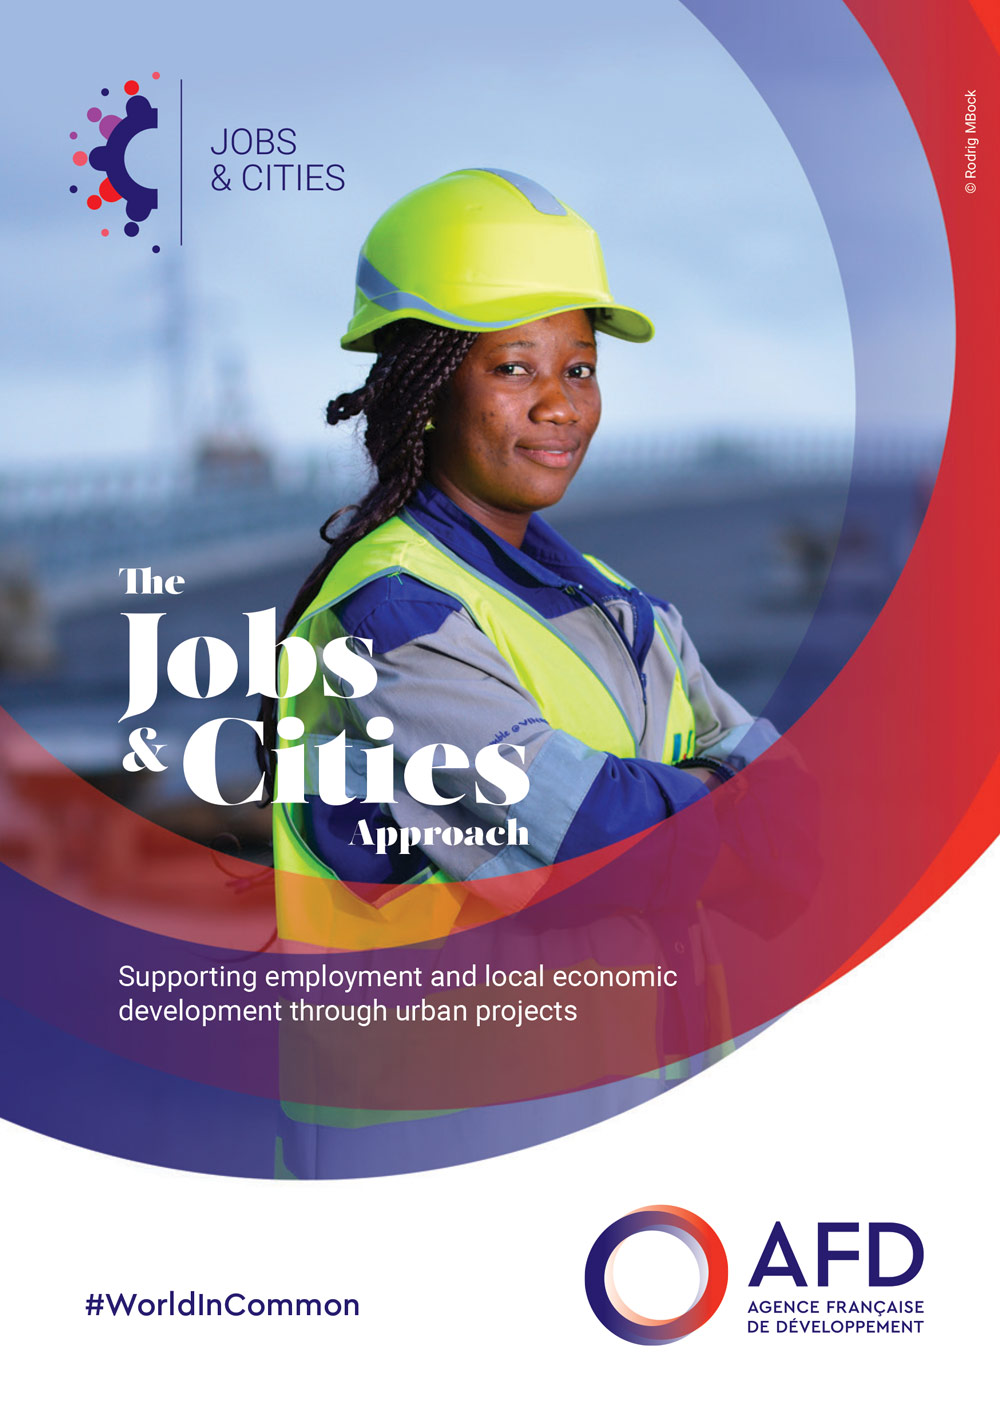 The Jobs & Cities Approach